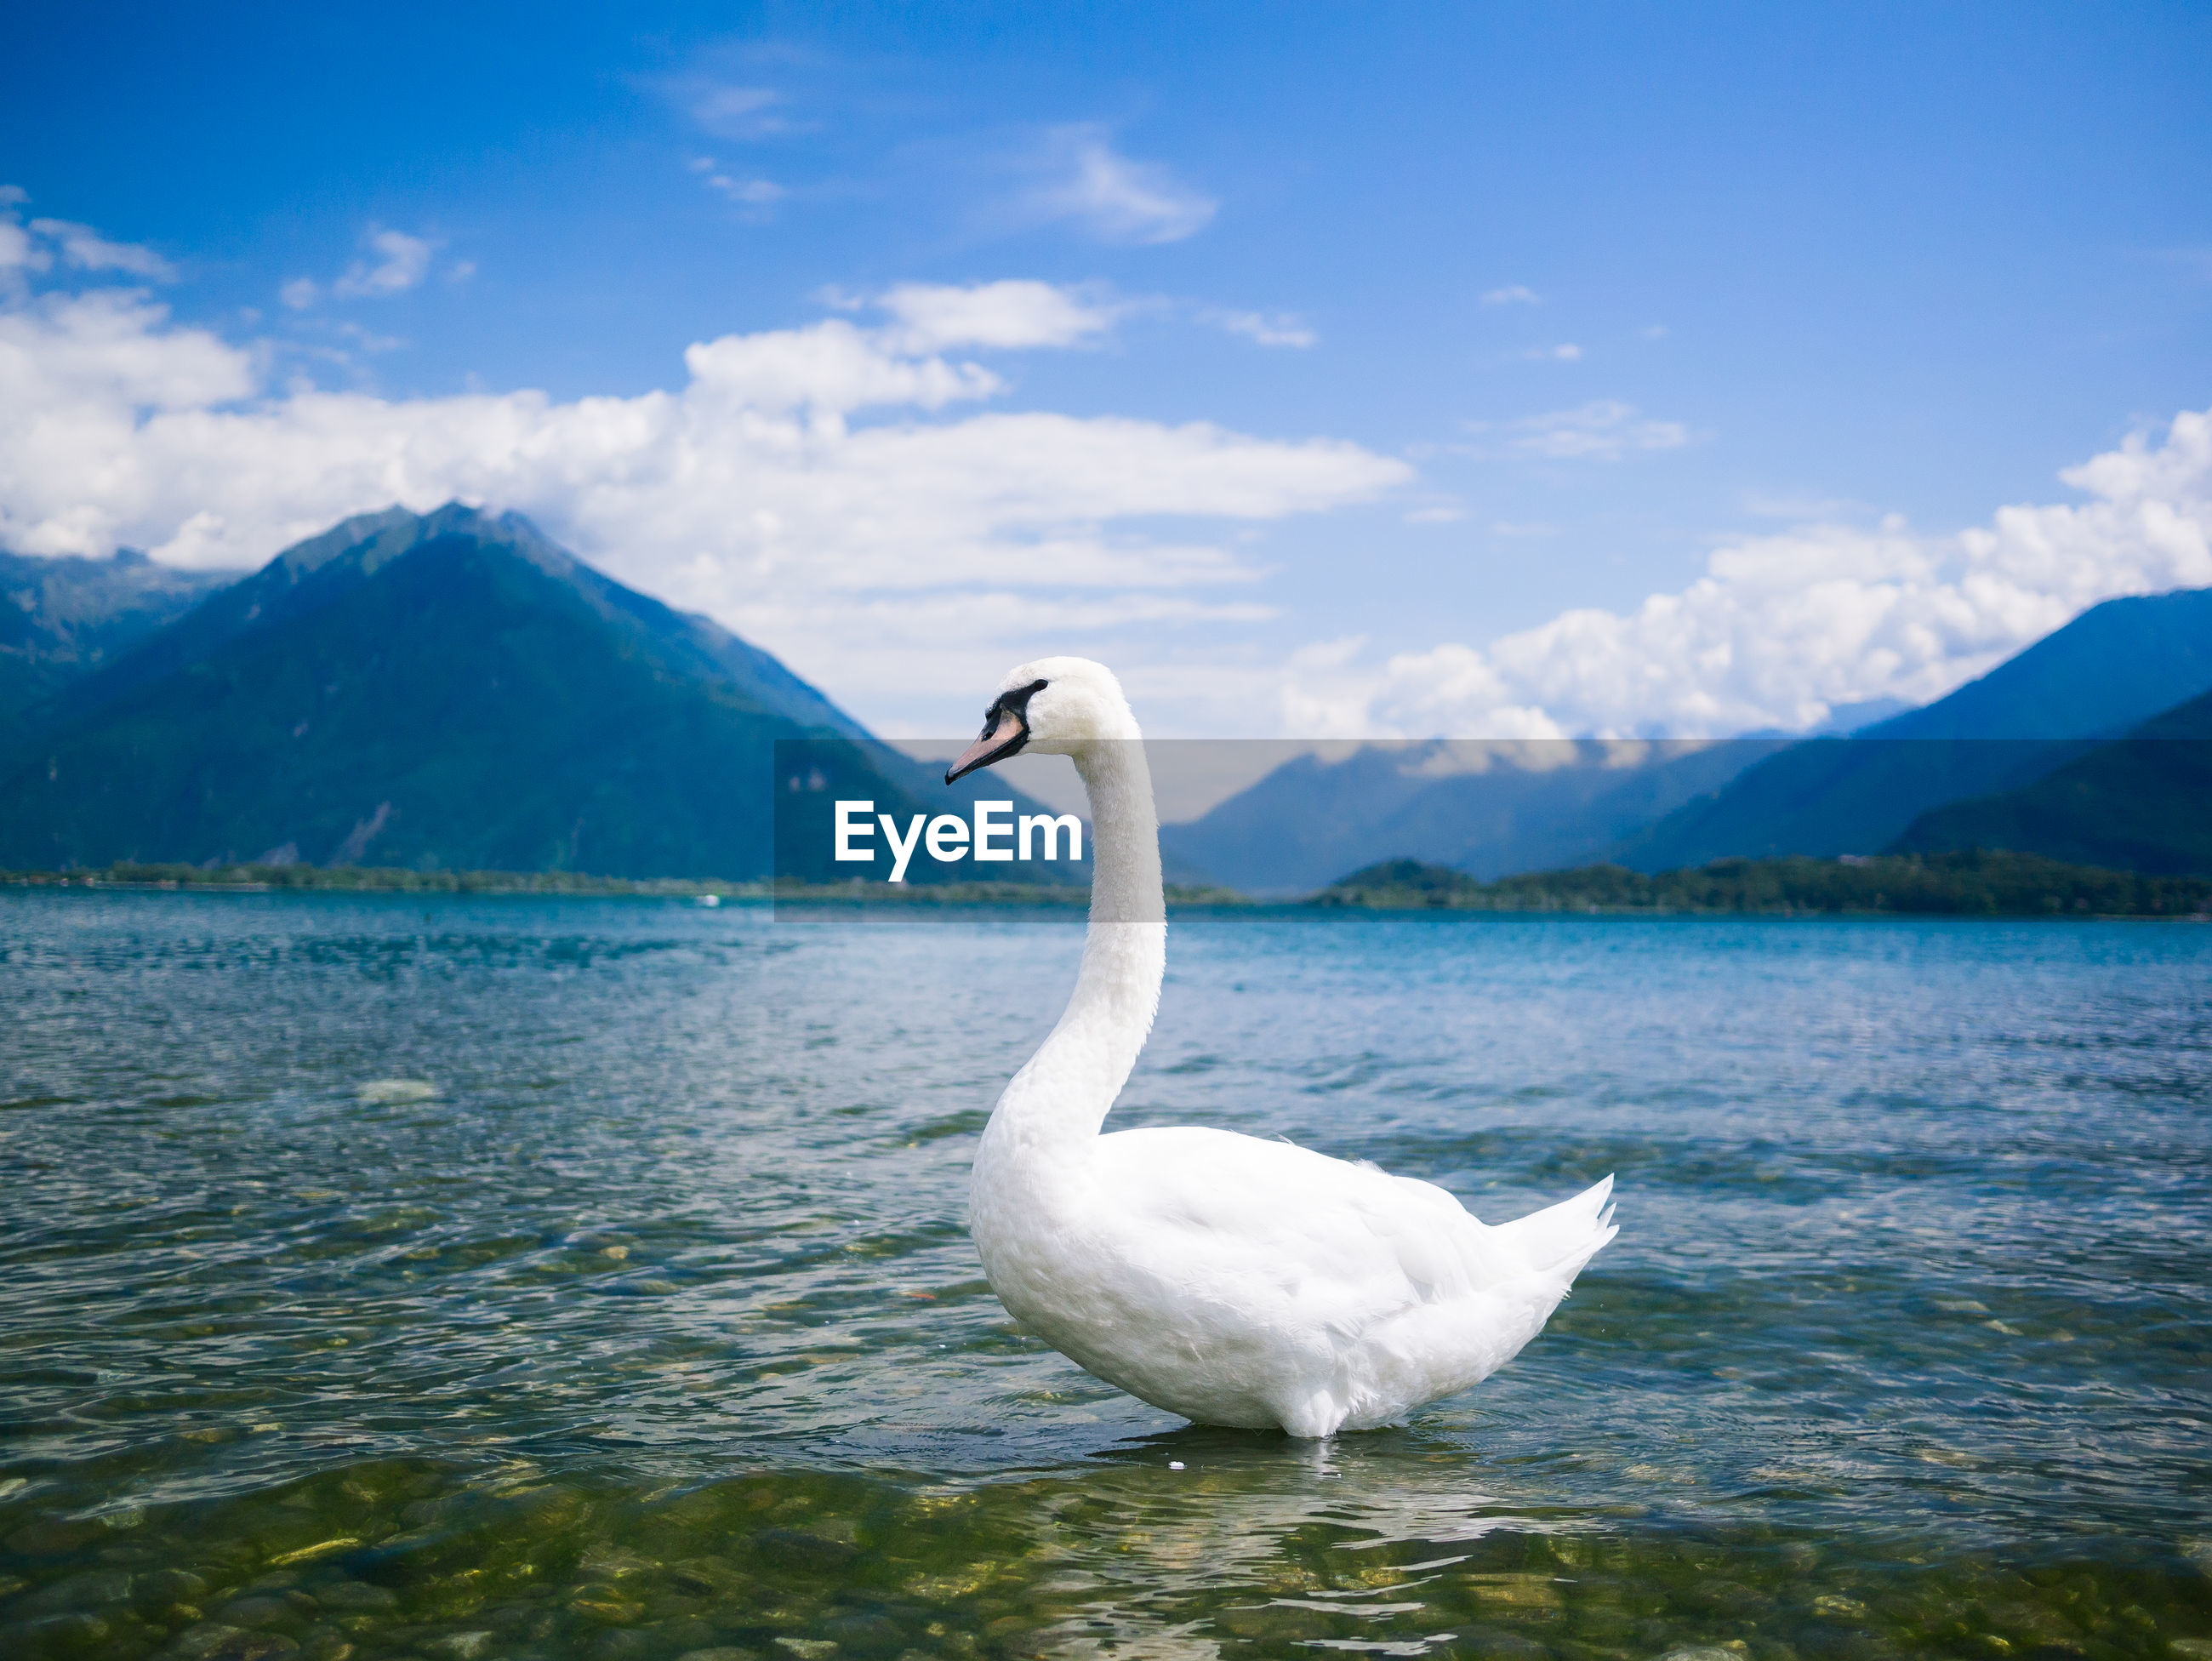 Mute swan in lake by mountains against sky